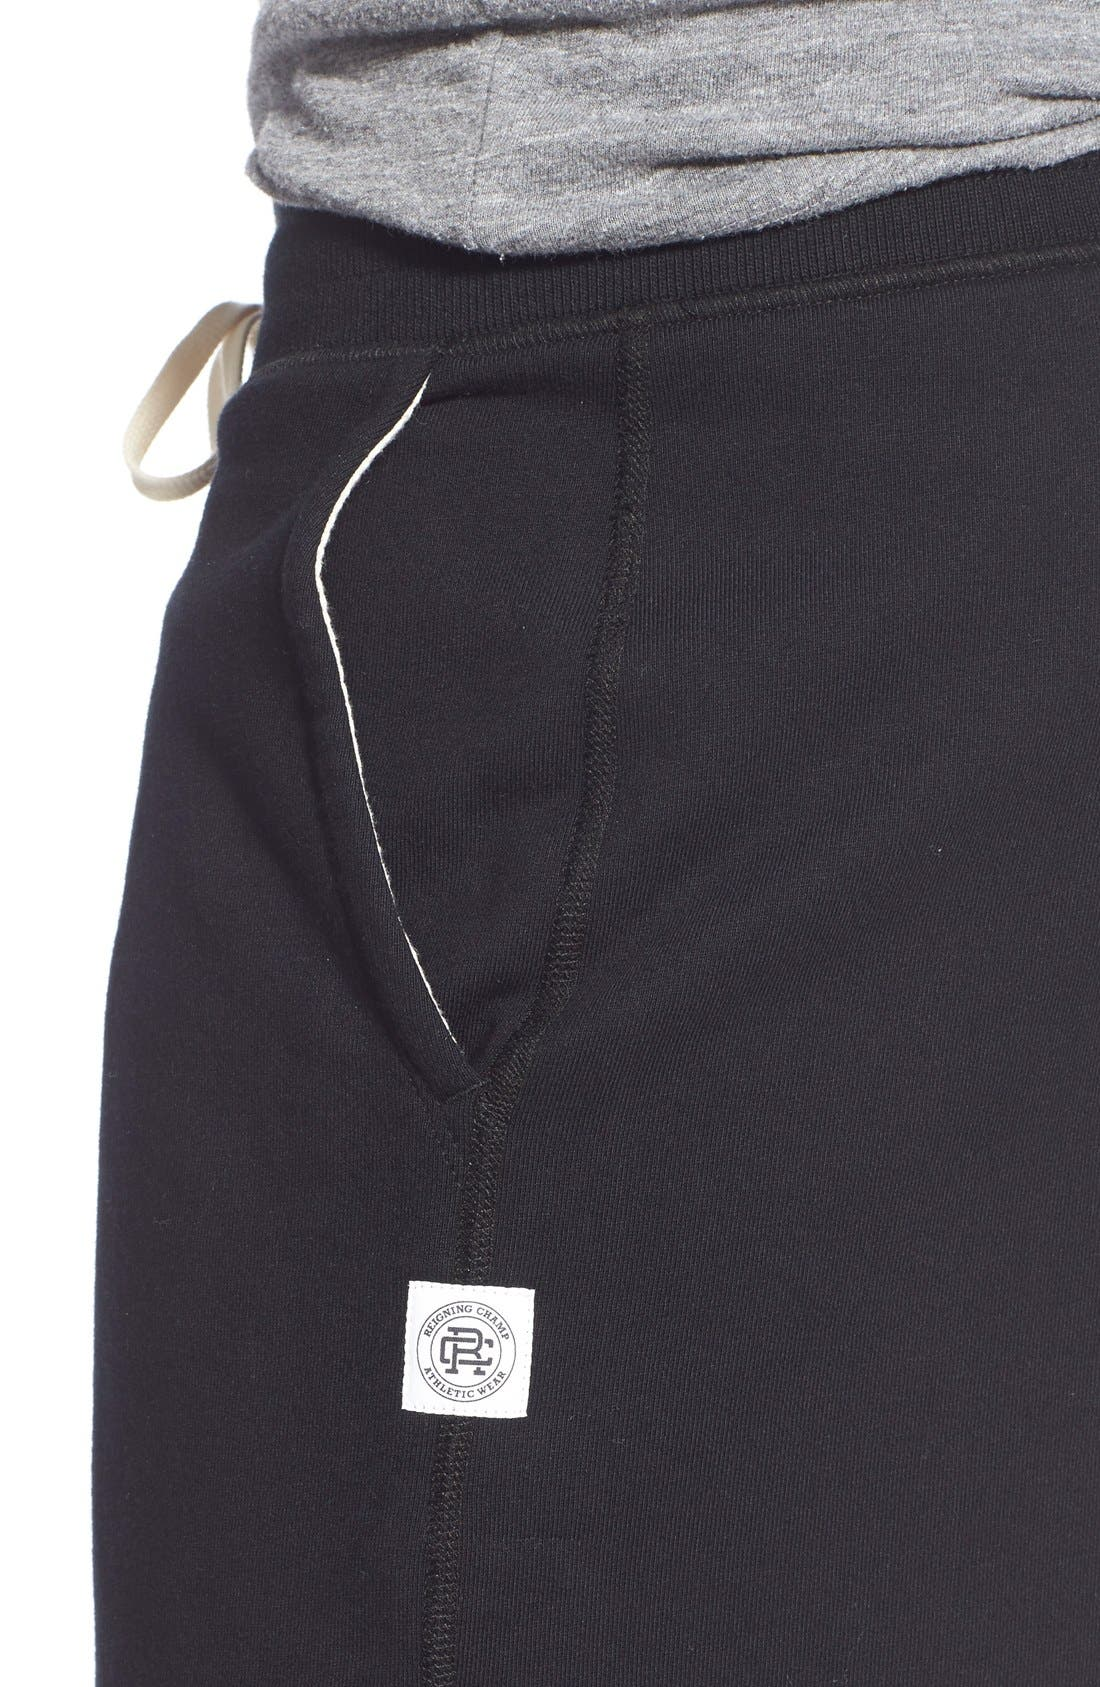 Terry Cotton Sweat Shorts,                             Alternate thumbnail 4, color,                             001